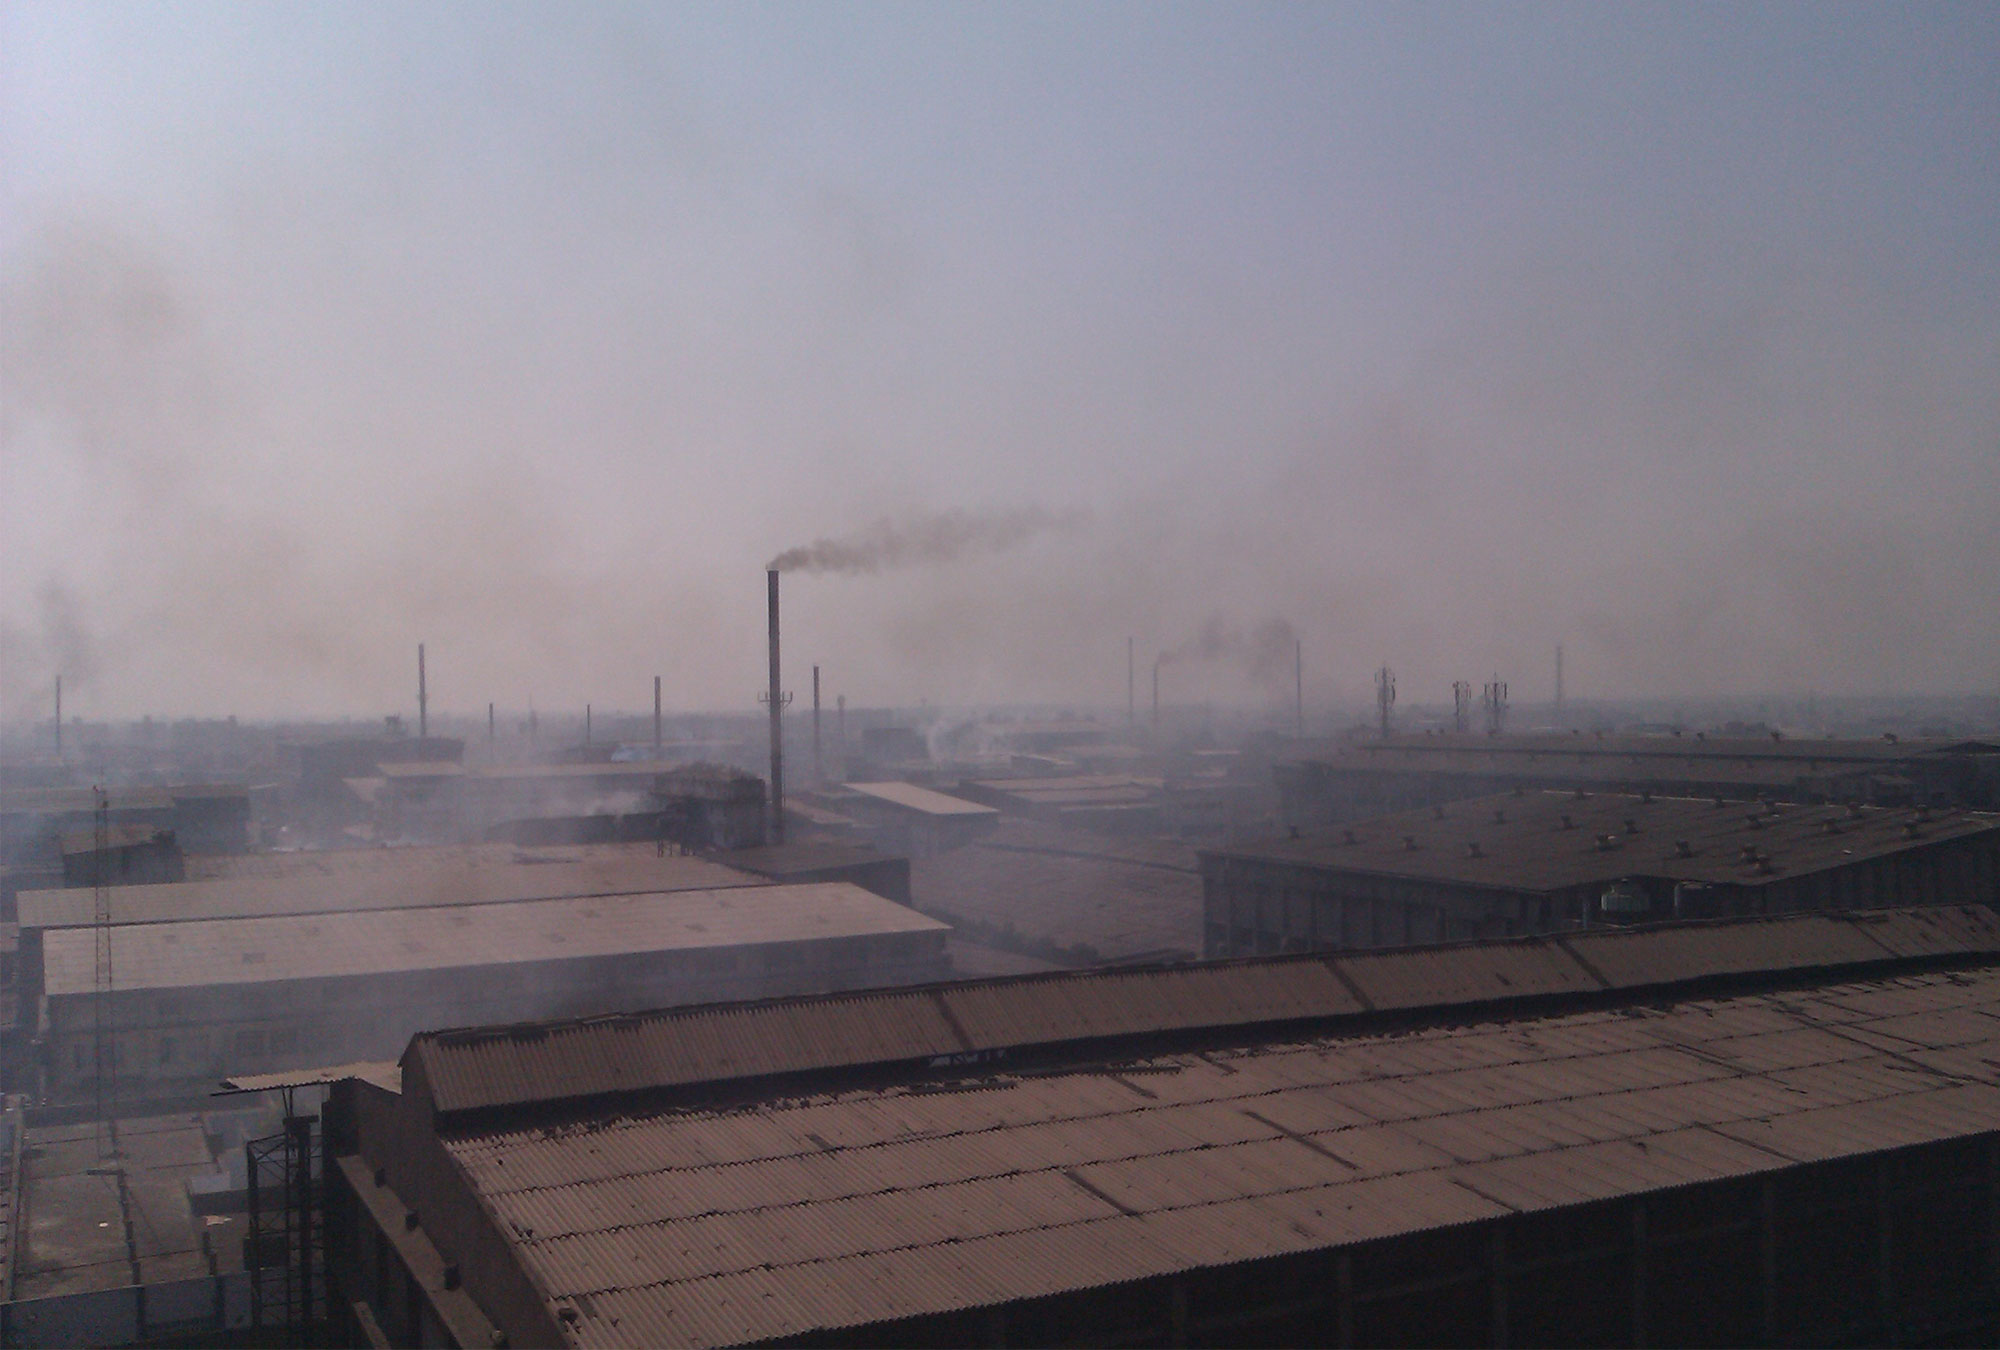 Smokestacks over roofs in India